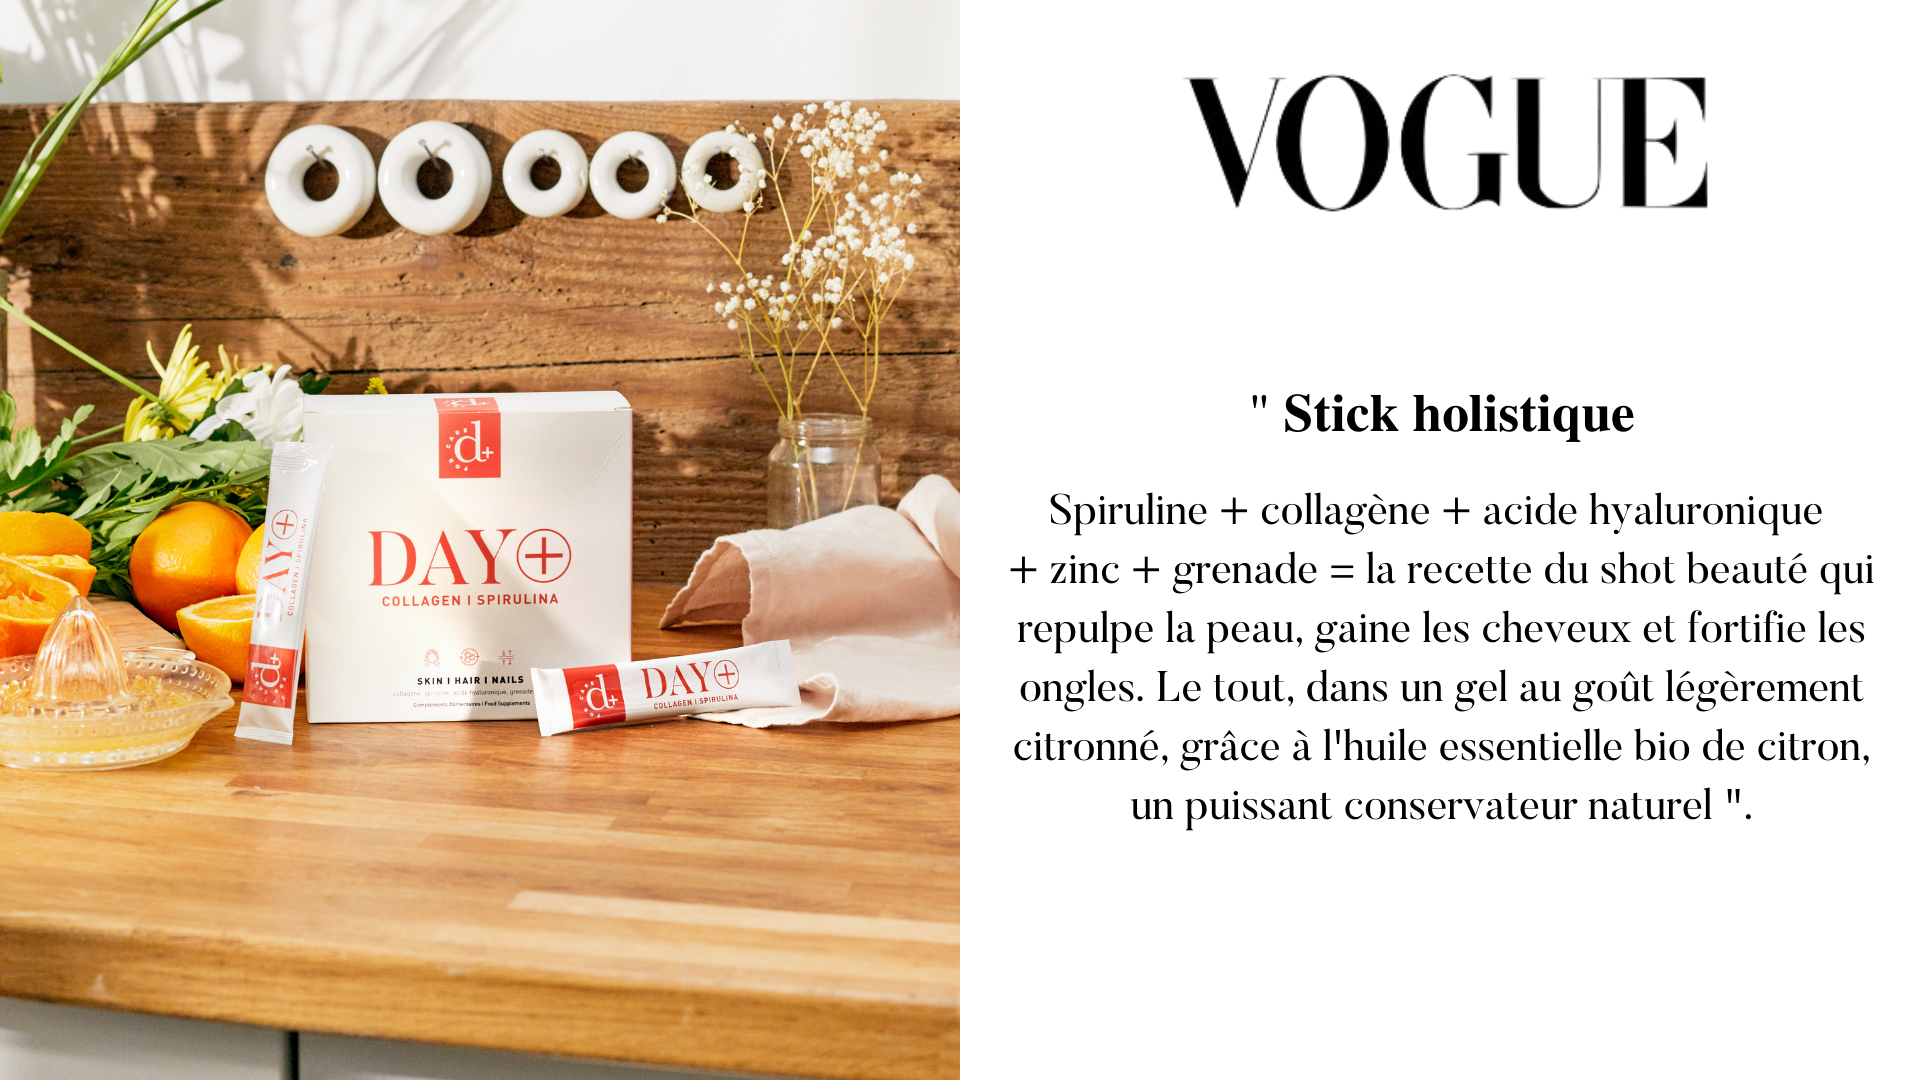 vogue beaute complement alimentaire anti rides acne imperfection